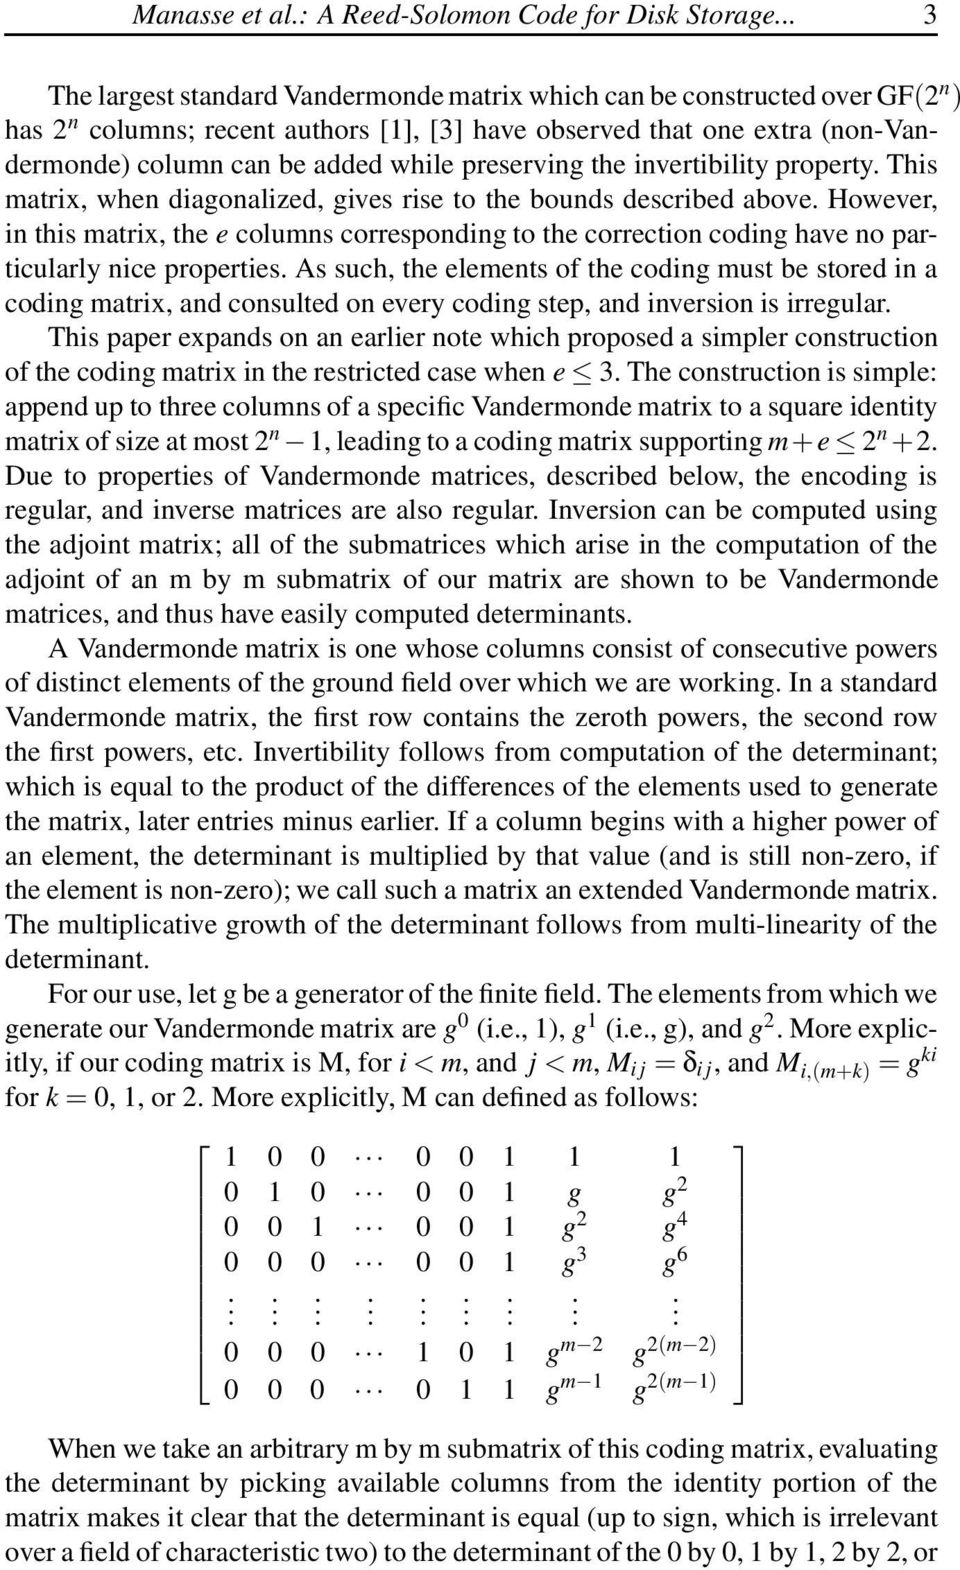 preserving the invertibility property. This matrix, when diagonalized, gives rise to the bounds described above.